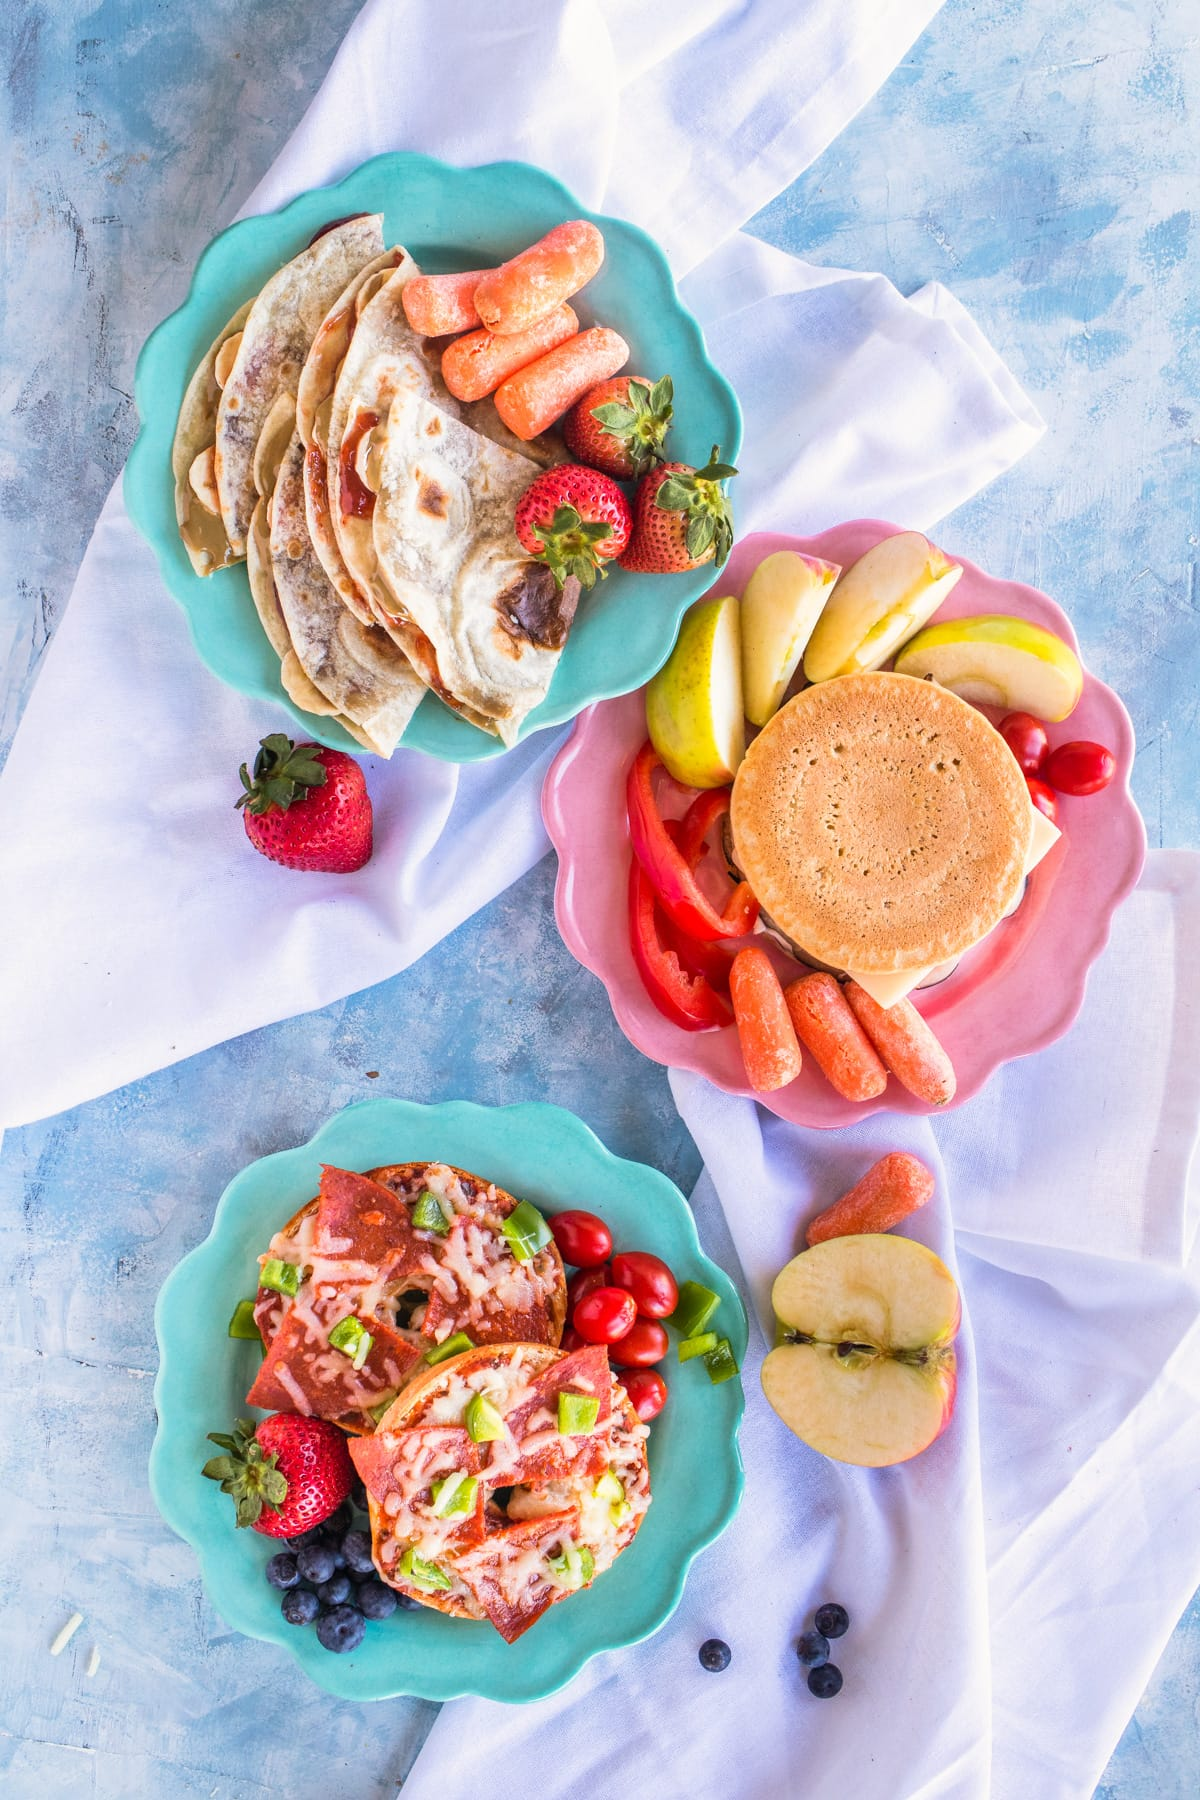 Healthy Kids Lunch Ideas Good Things Baking by top Houston lifestyle blogger Ashley Rose of Sugar & Cloth